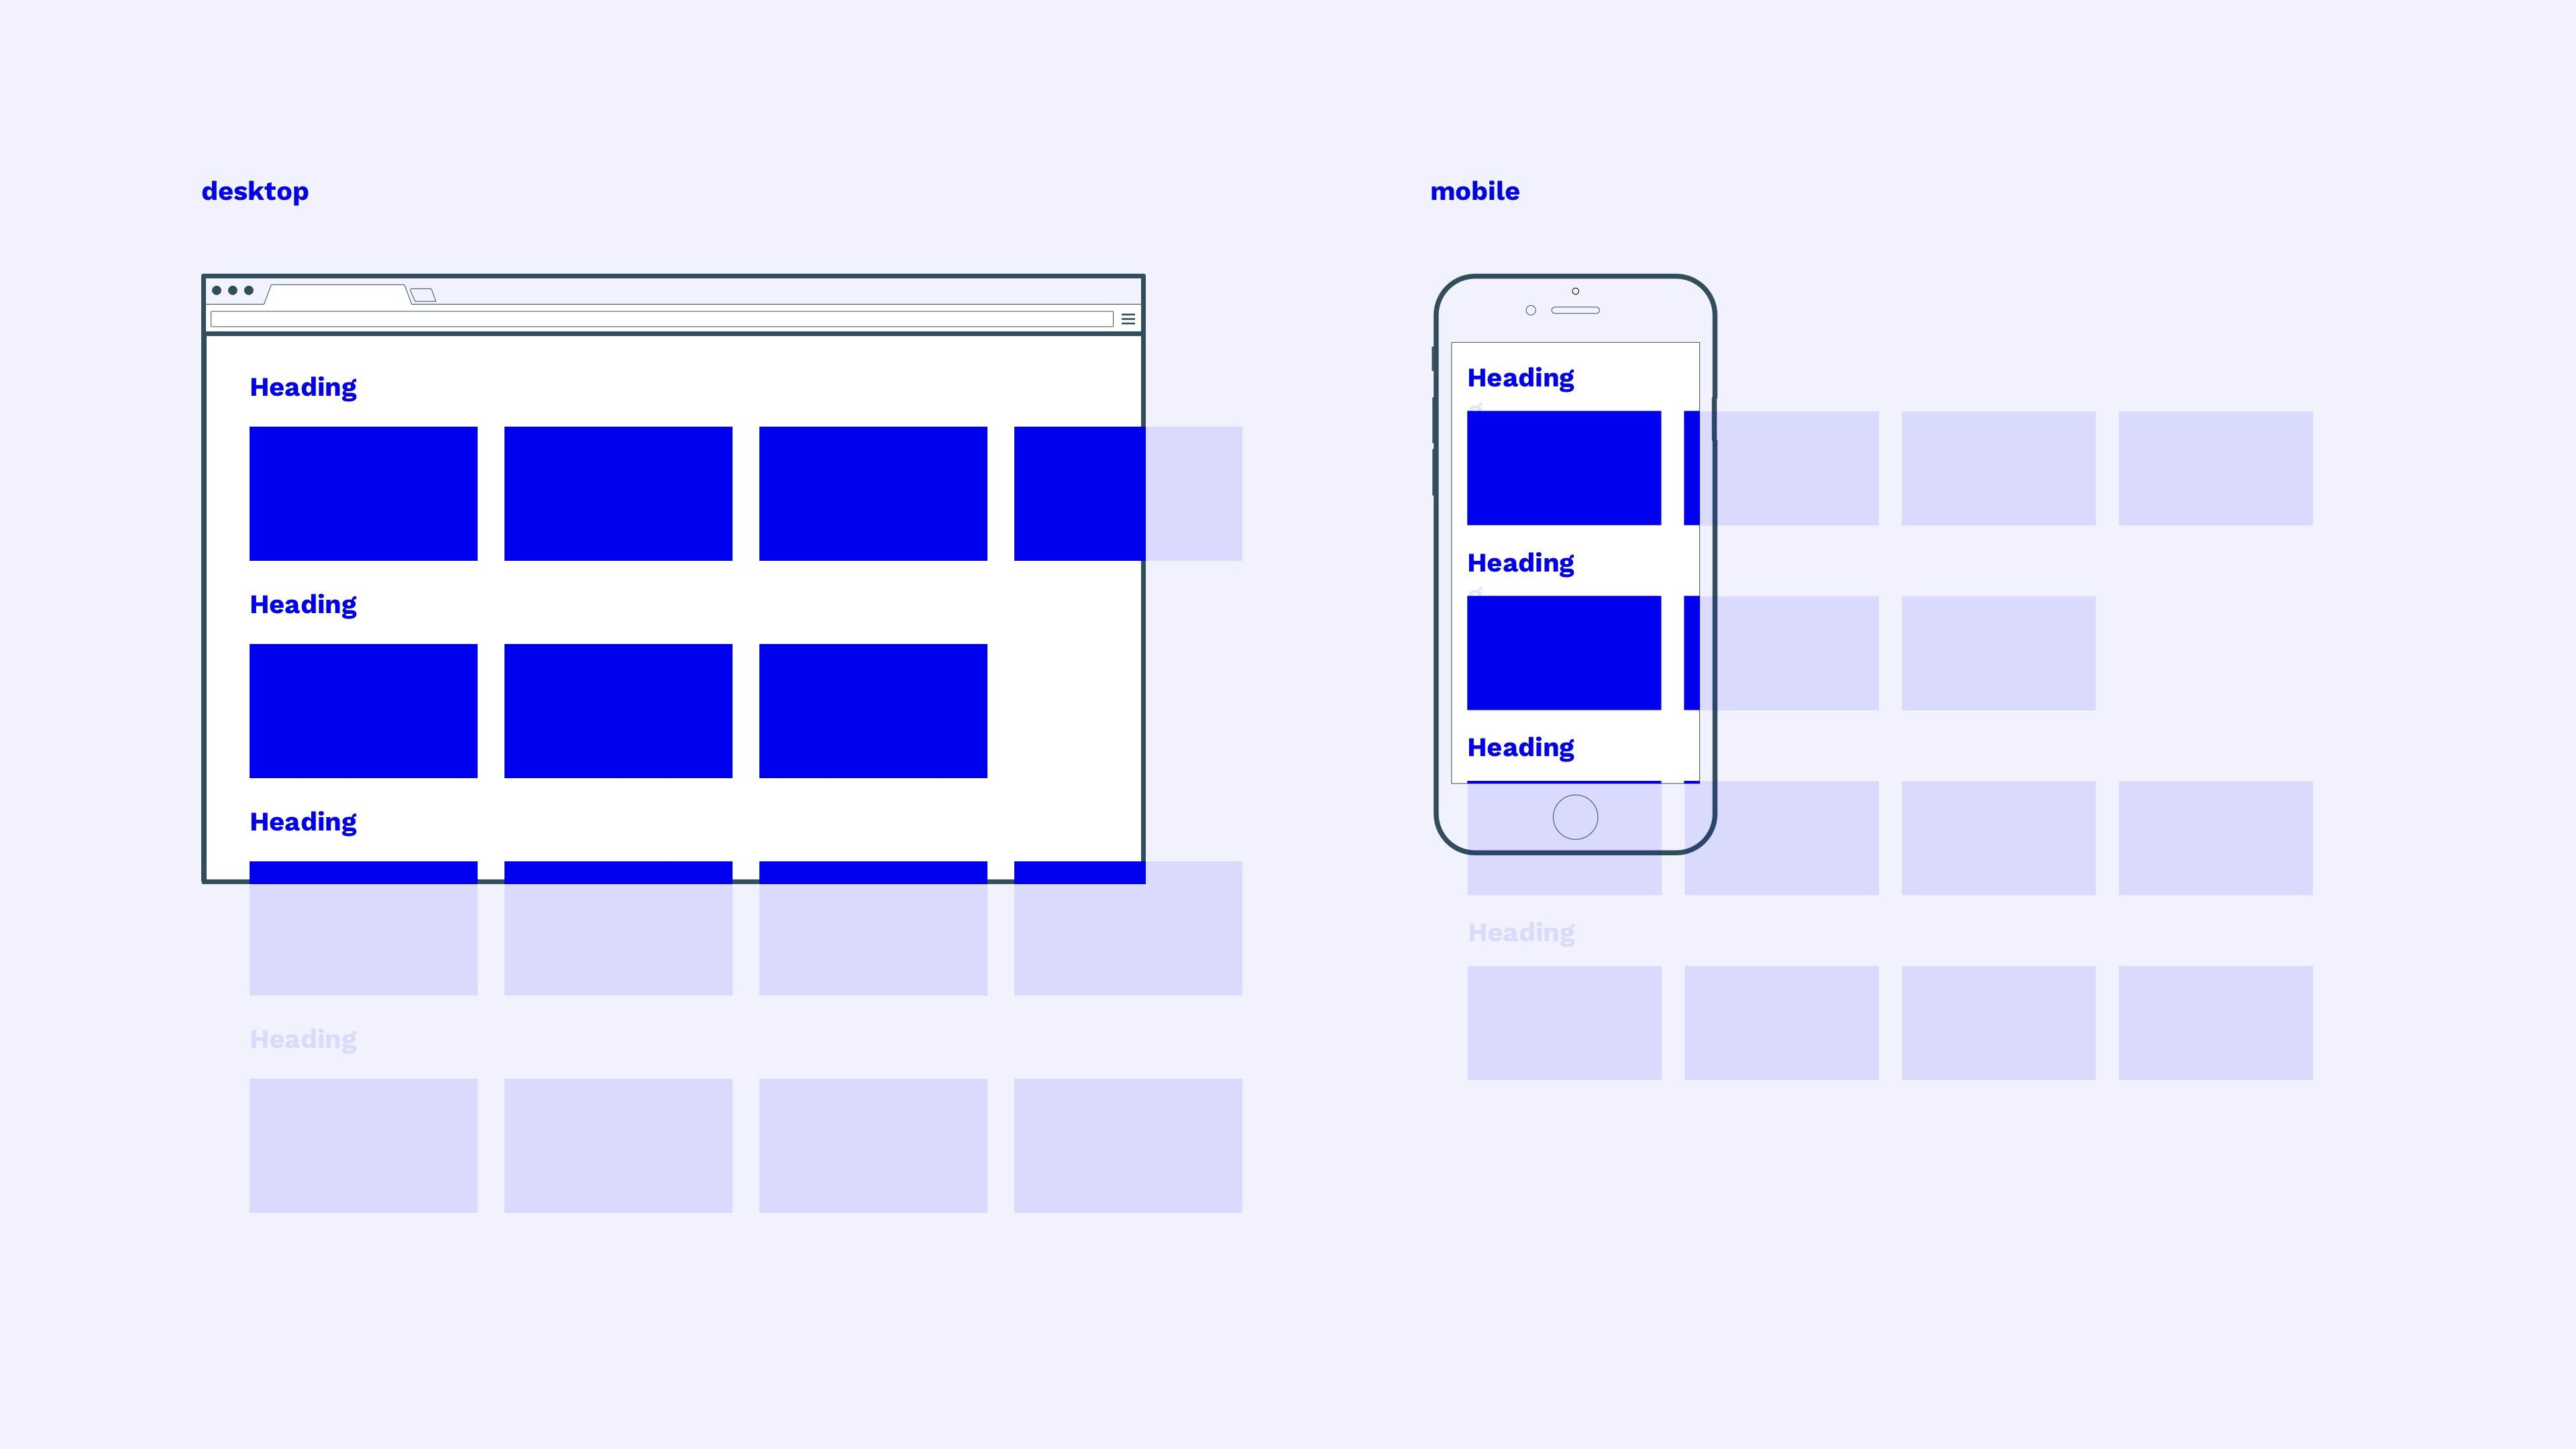 The graphic shows the design principle for vertical and horizontal orientations in mobile devices